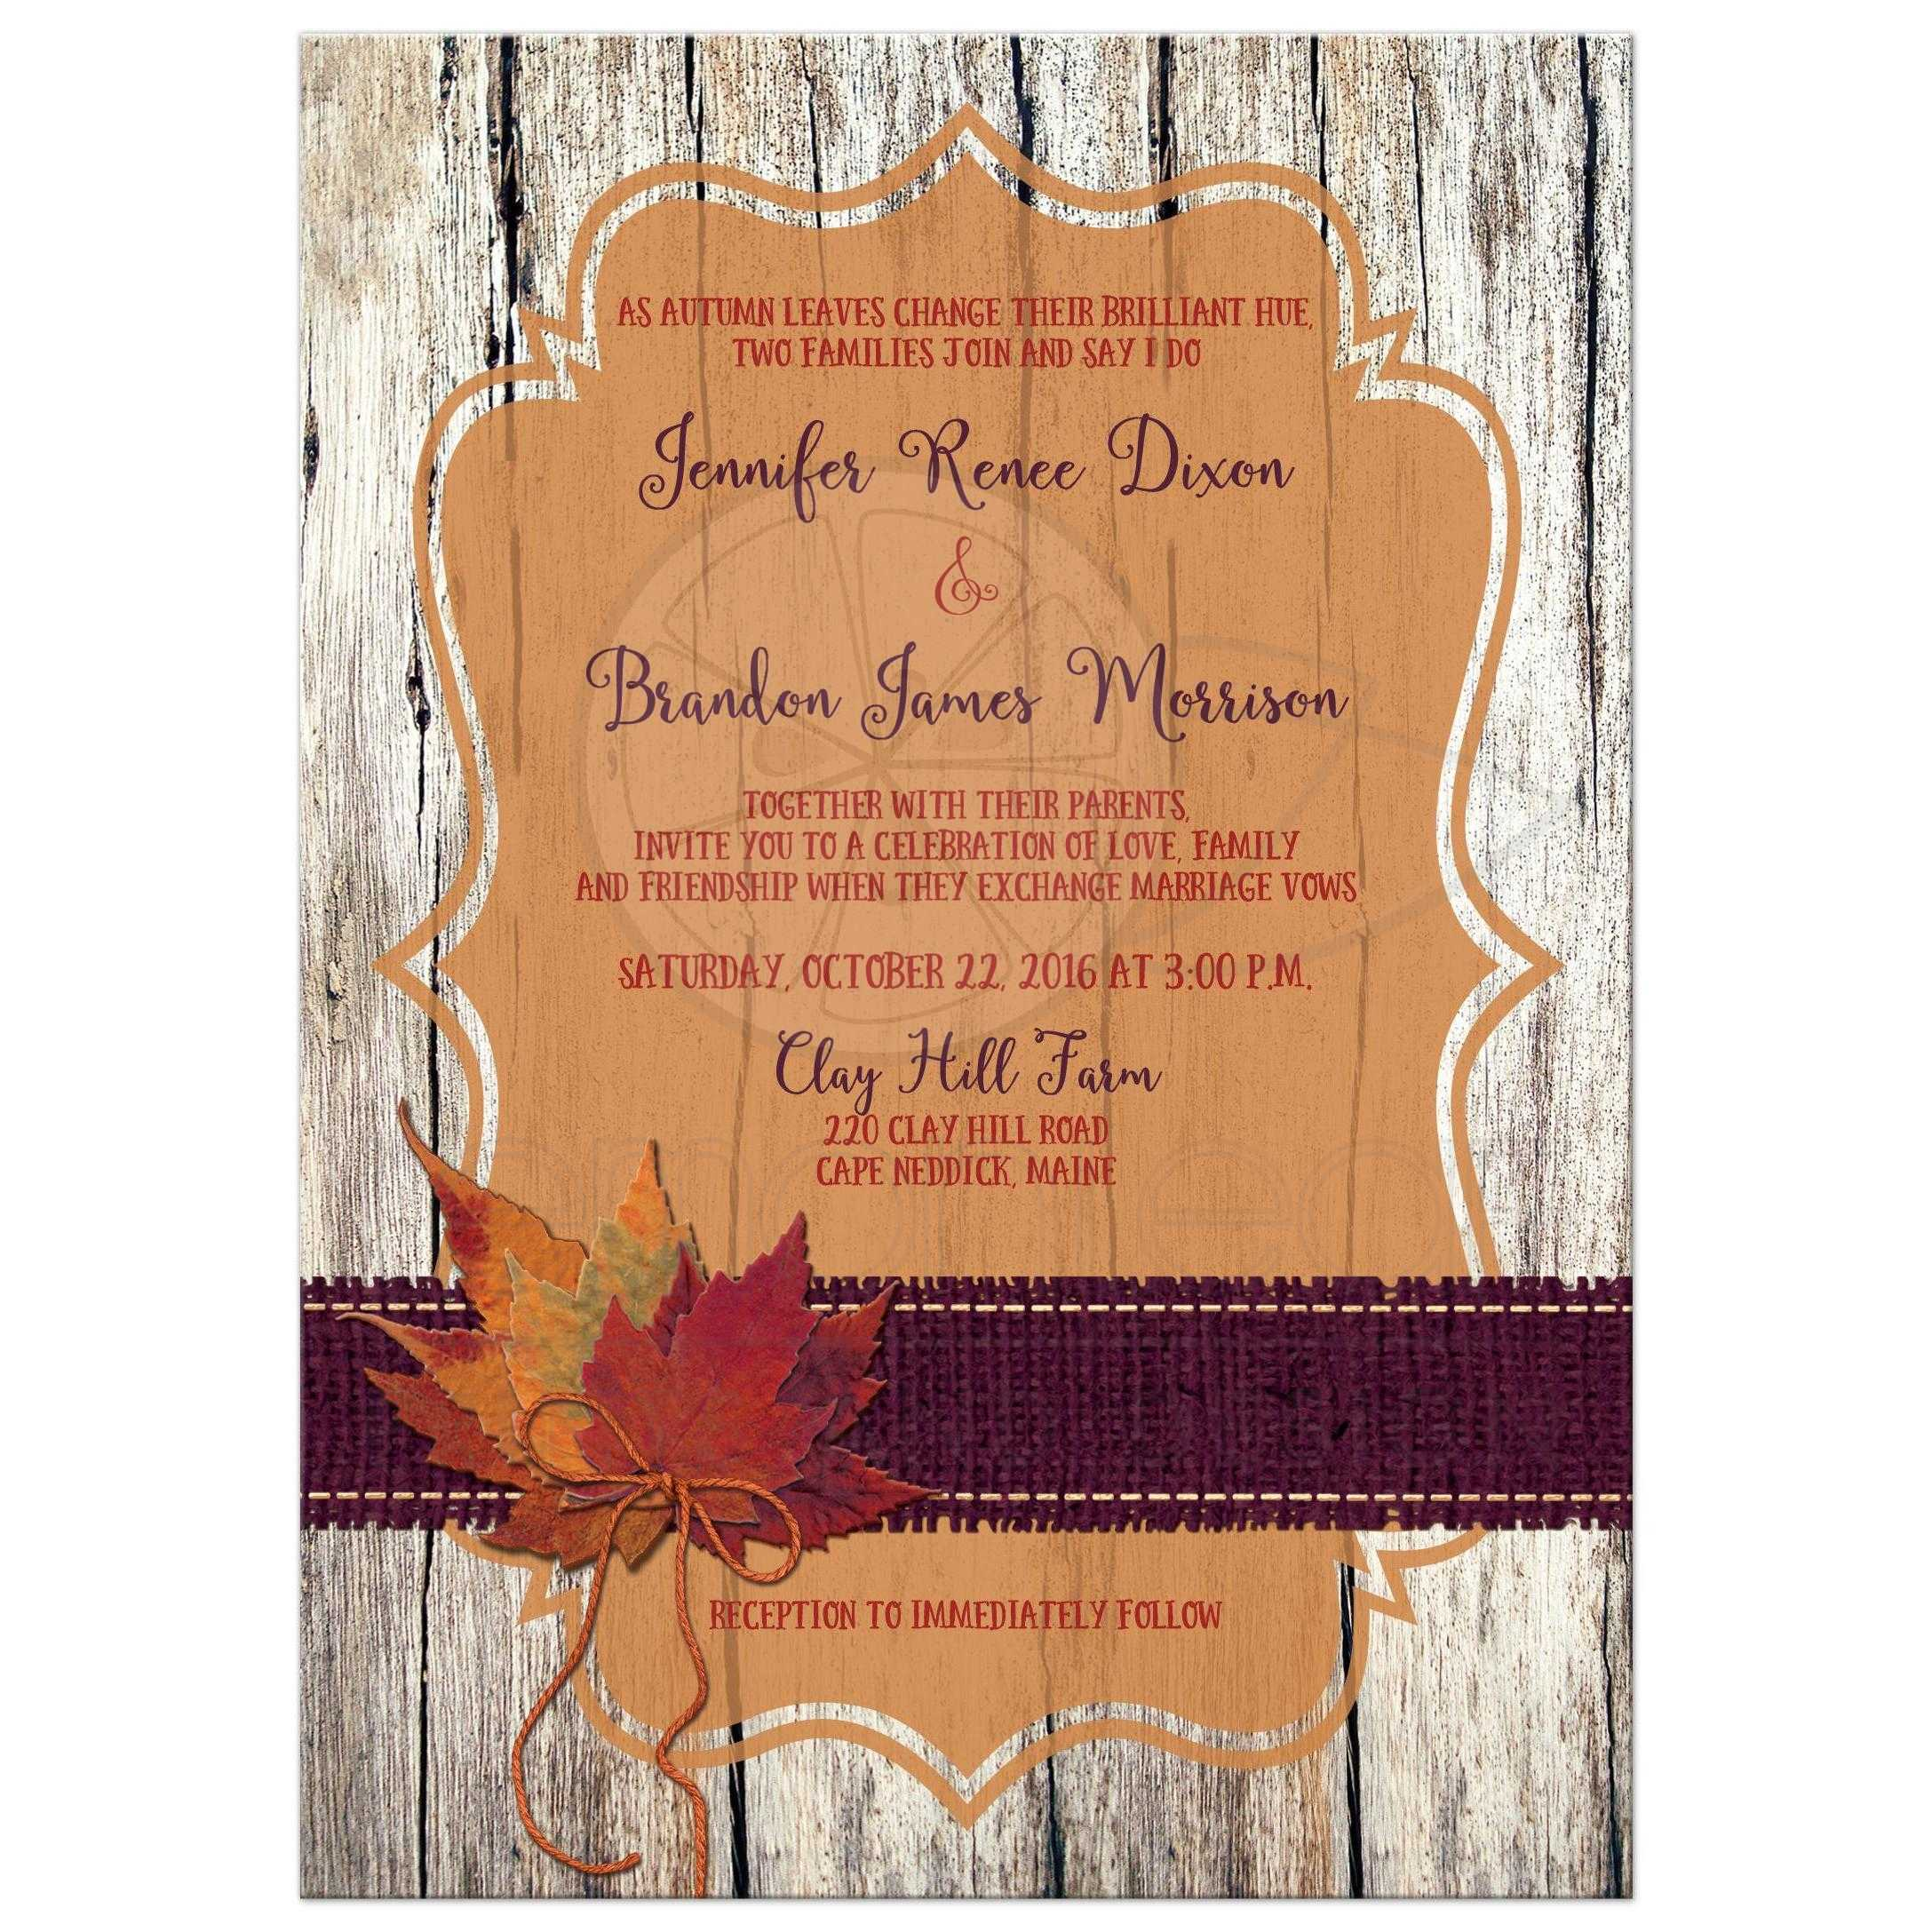 Great Rustic Orange And Purple Wood Burlap Autumn Leaves Wedding Invites With Twine Bow